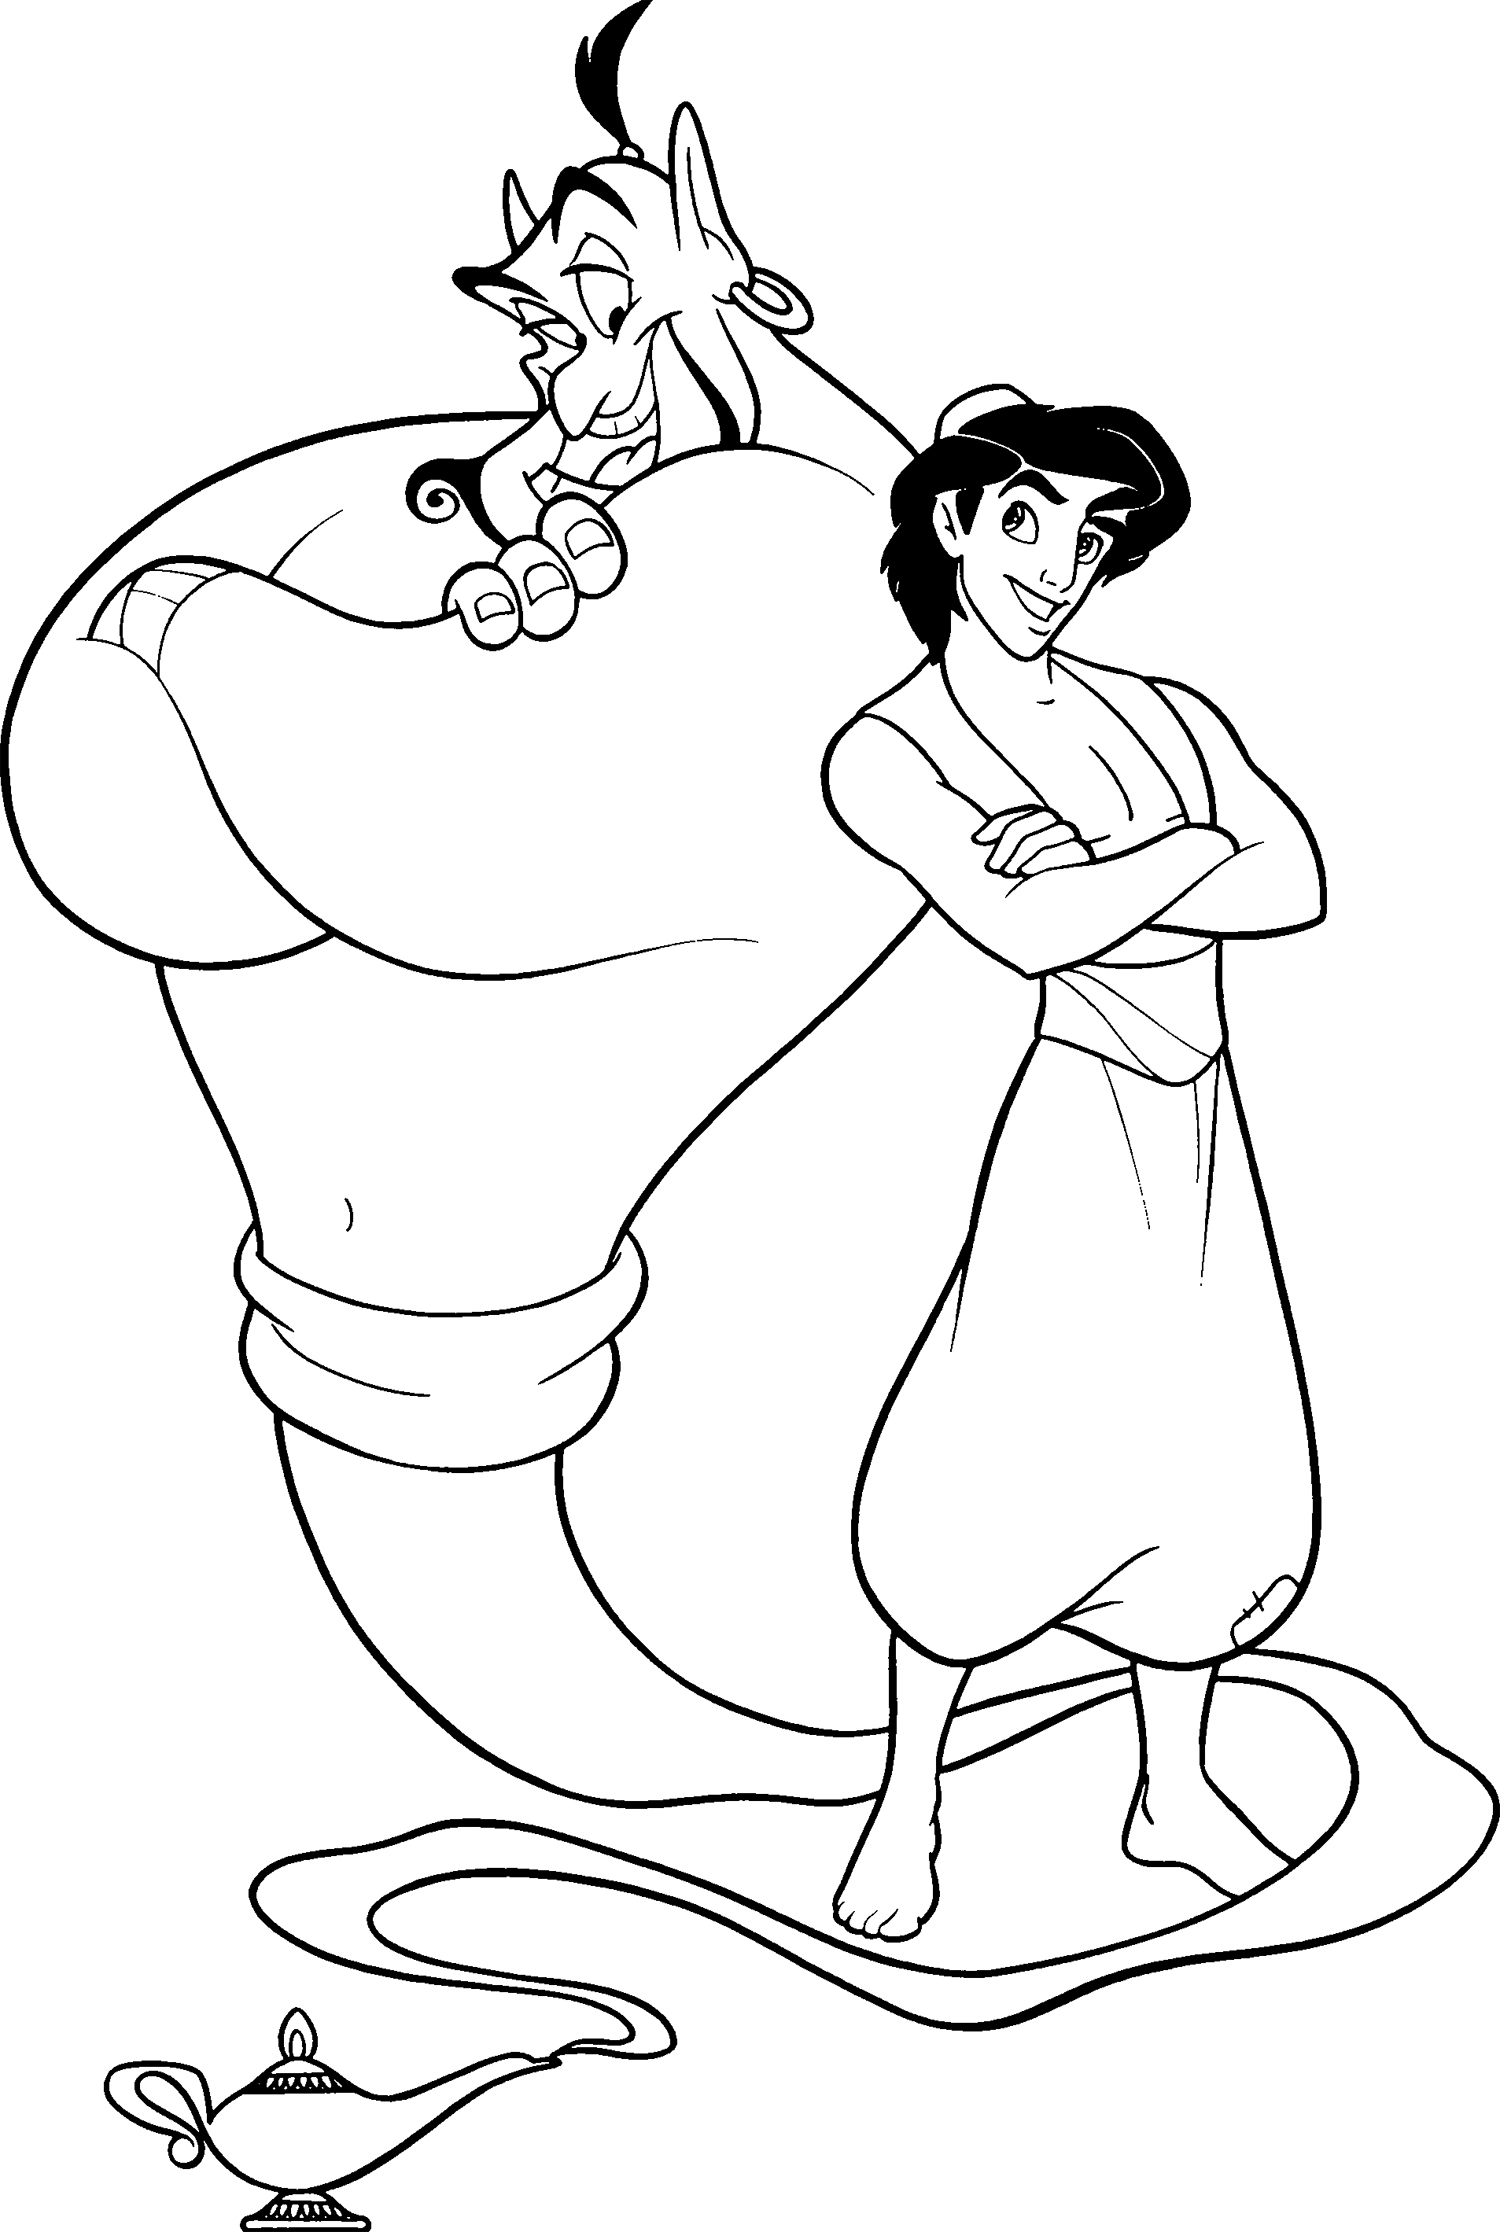 1500x2232 Trendy Aladdin Outline Learn How To Draw The Genie From Step By